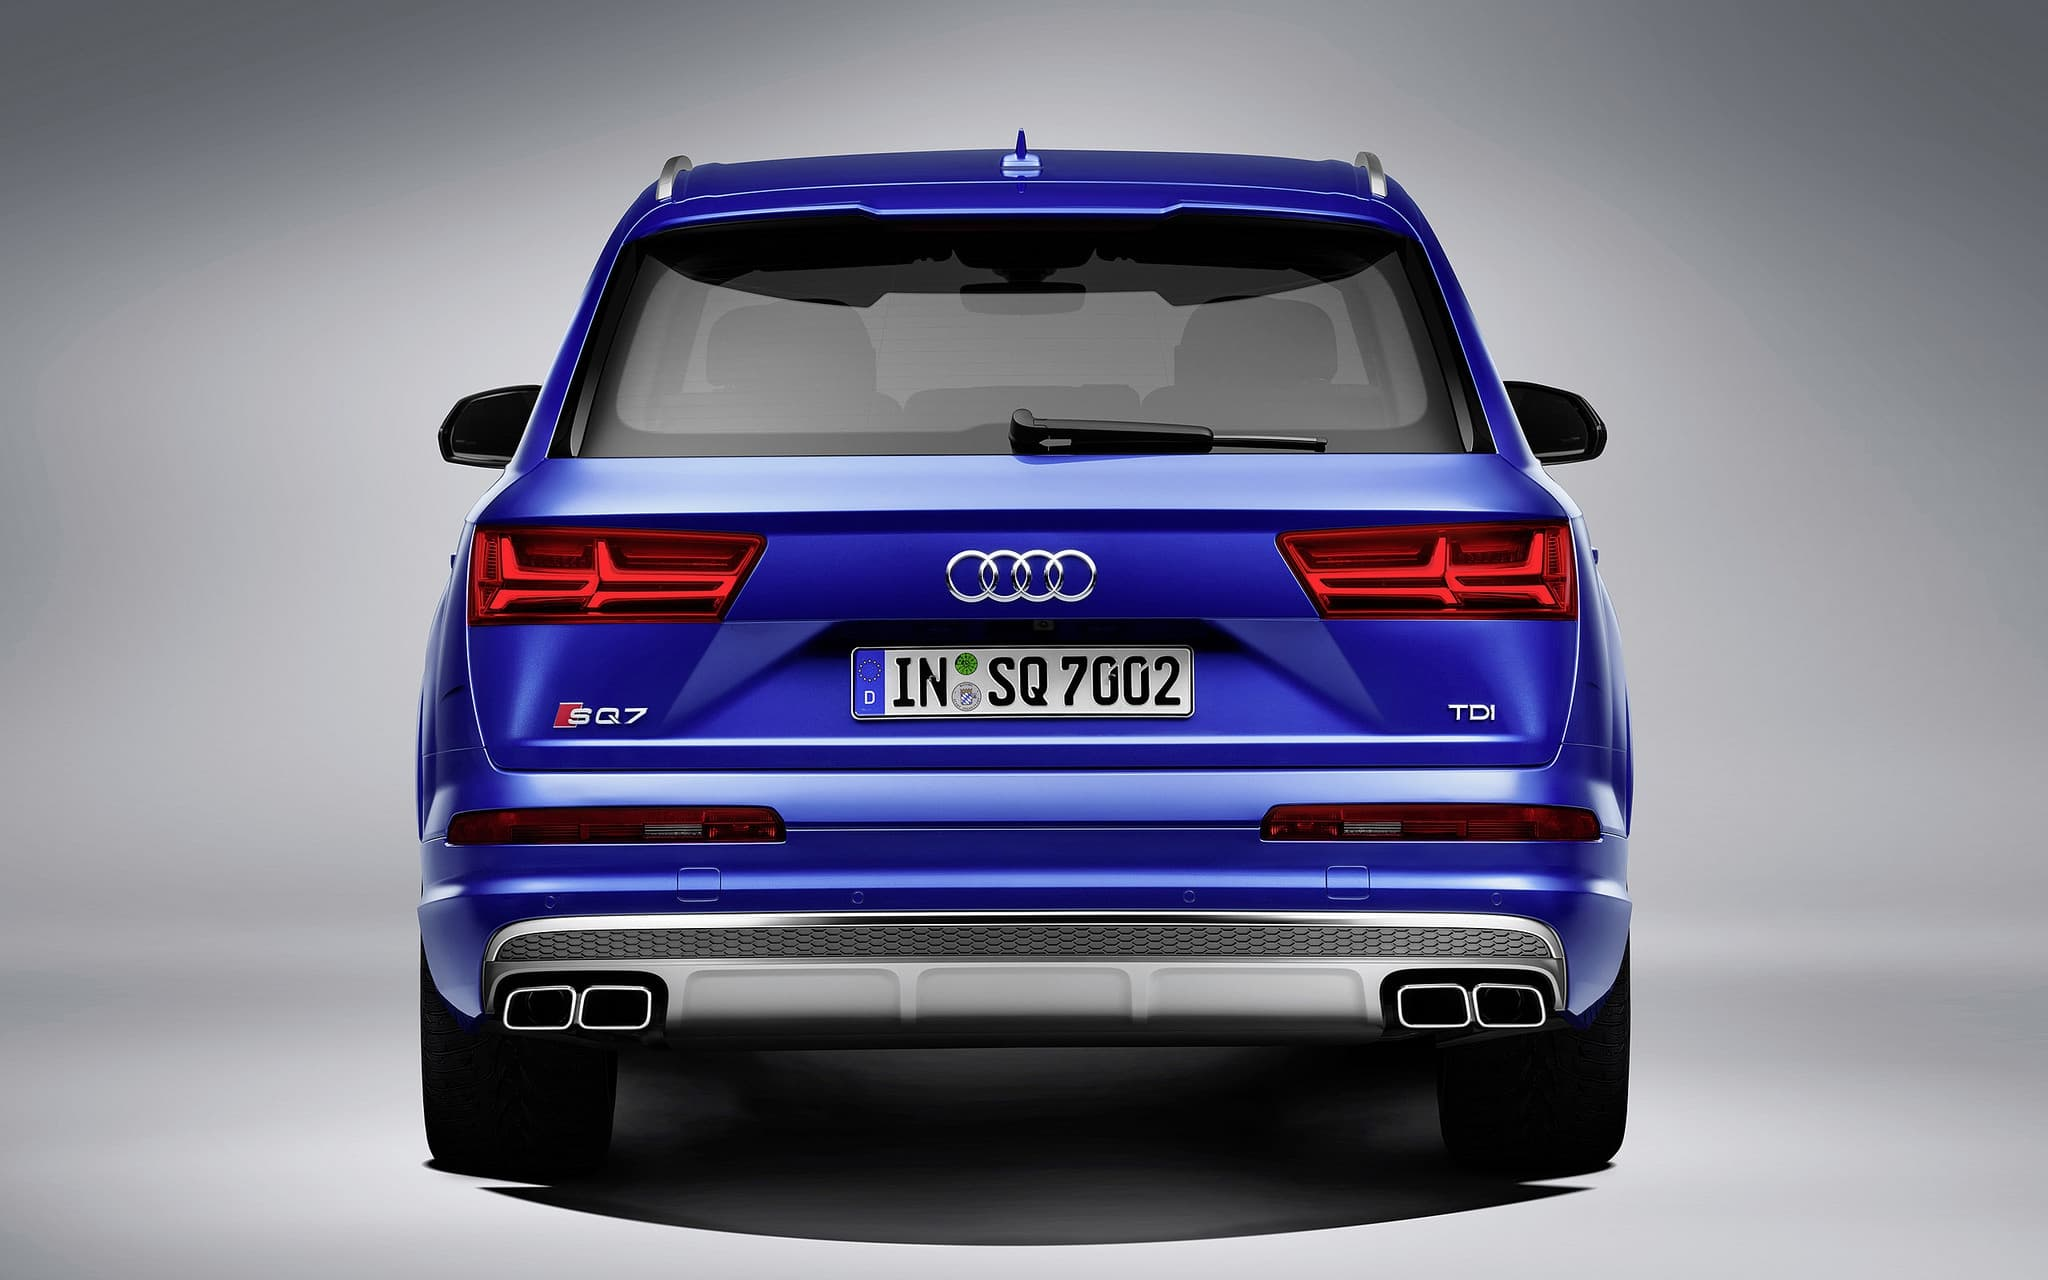 2016 Audi SQ7 HD wallpaper for PC